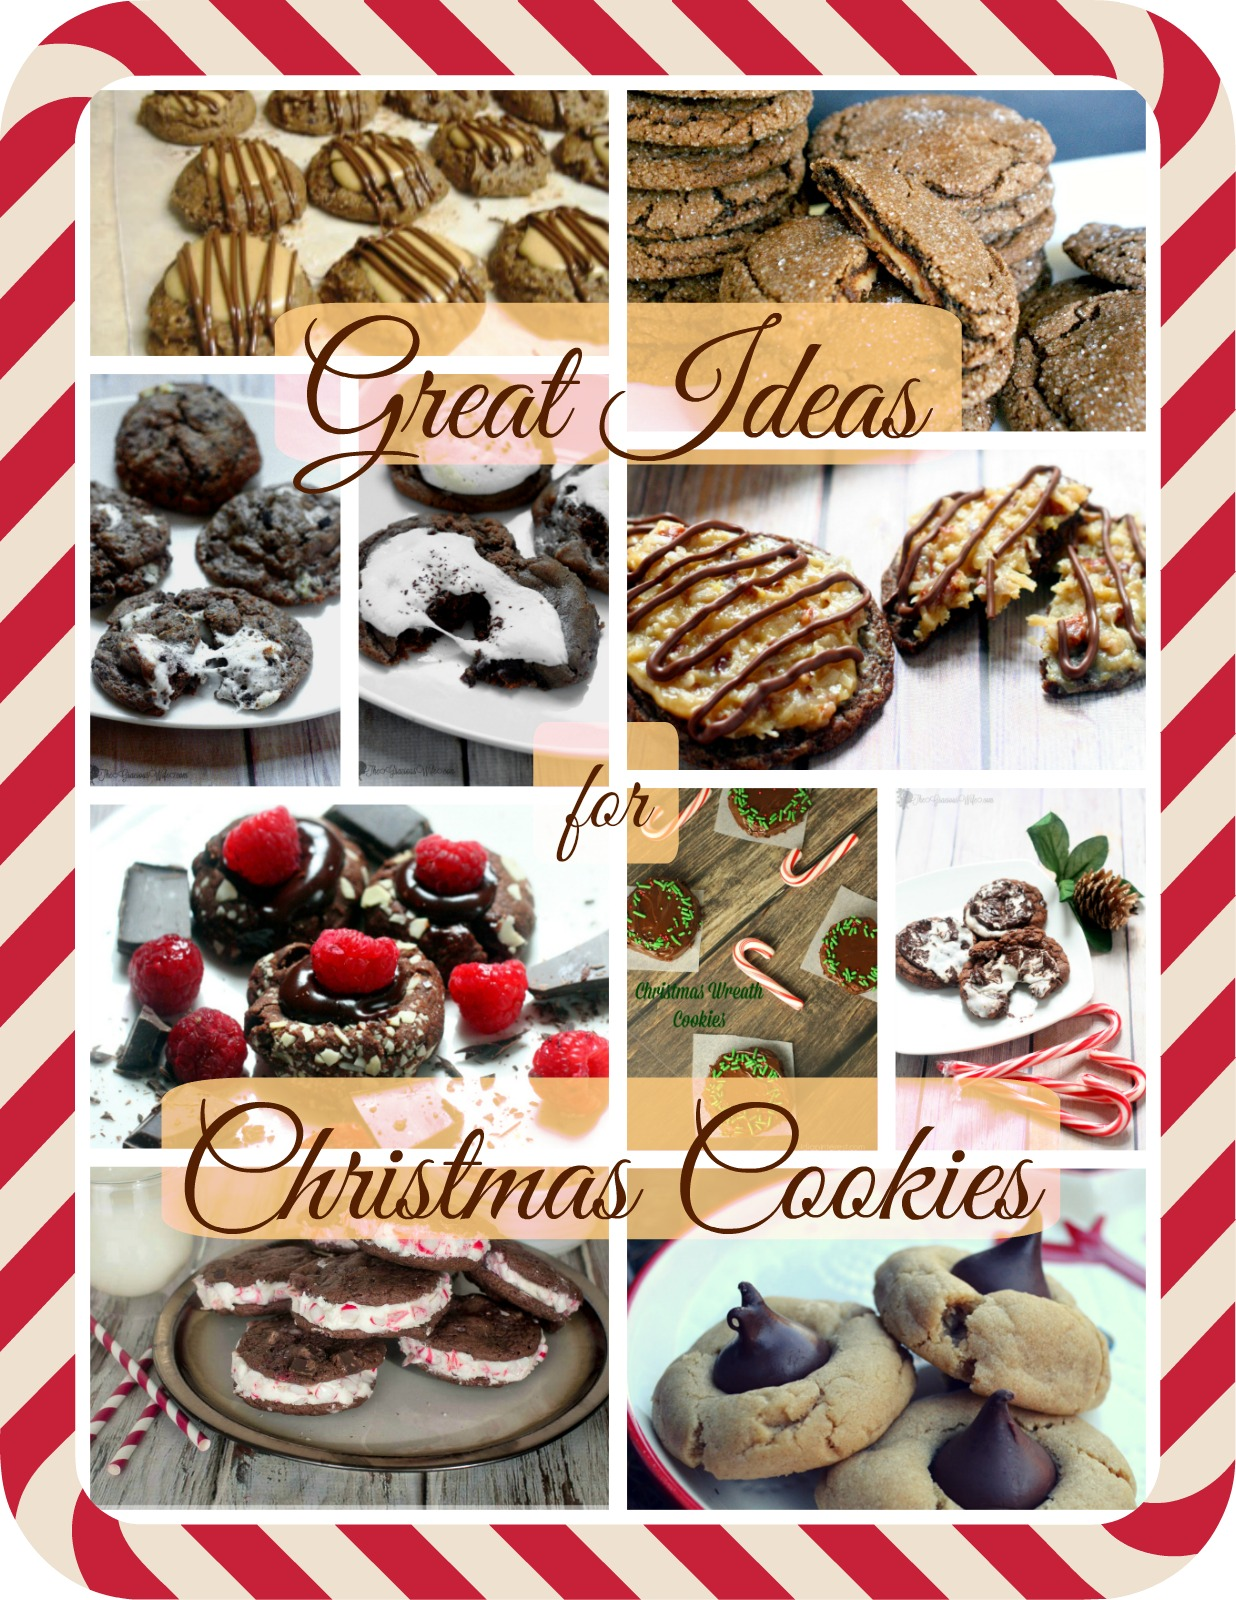 Great Ideas for Christmas Cookies #roundup